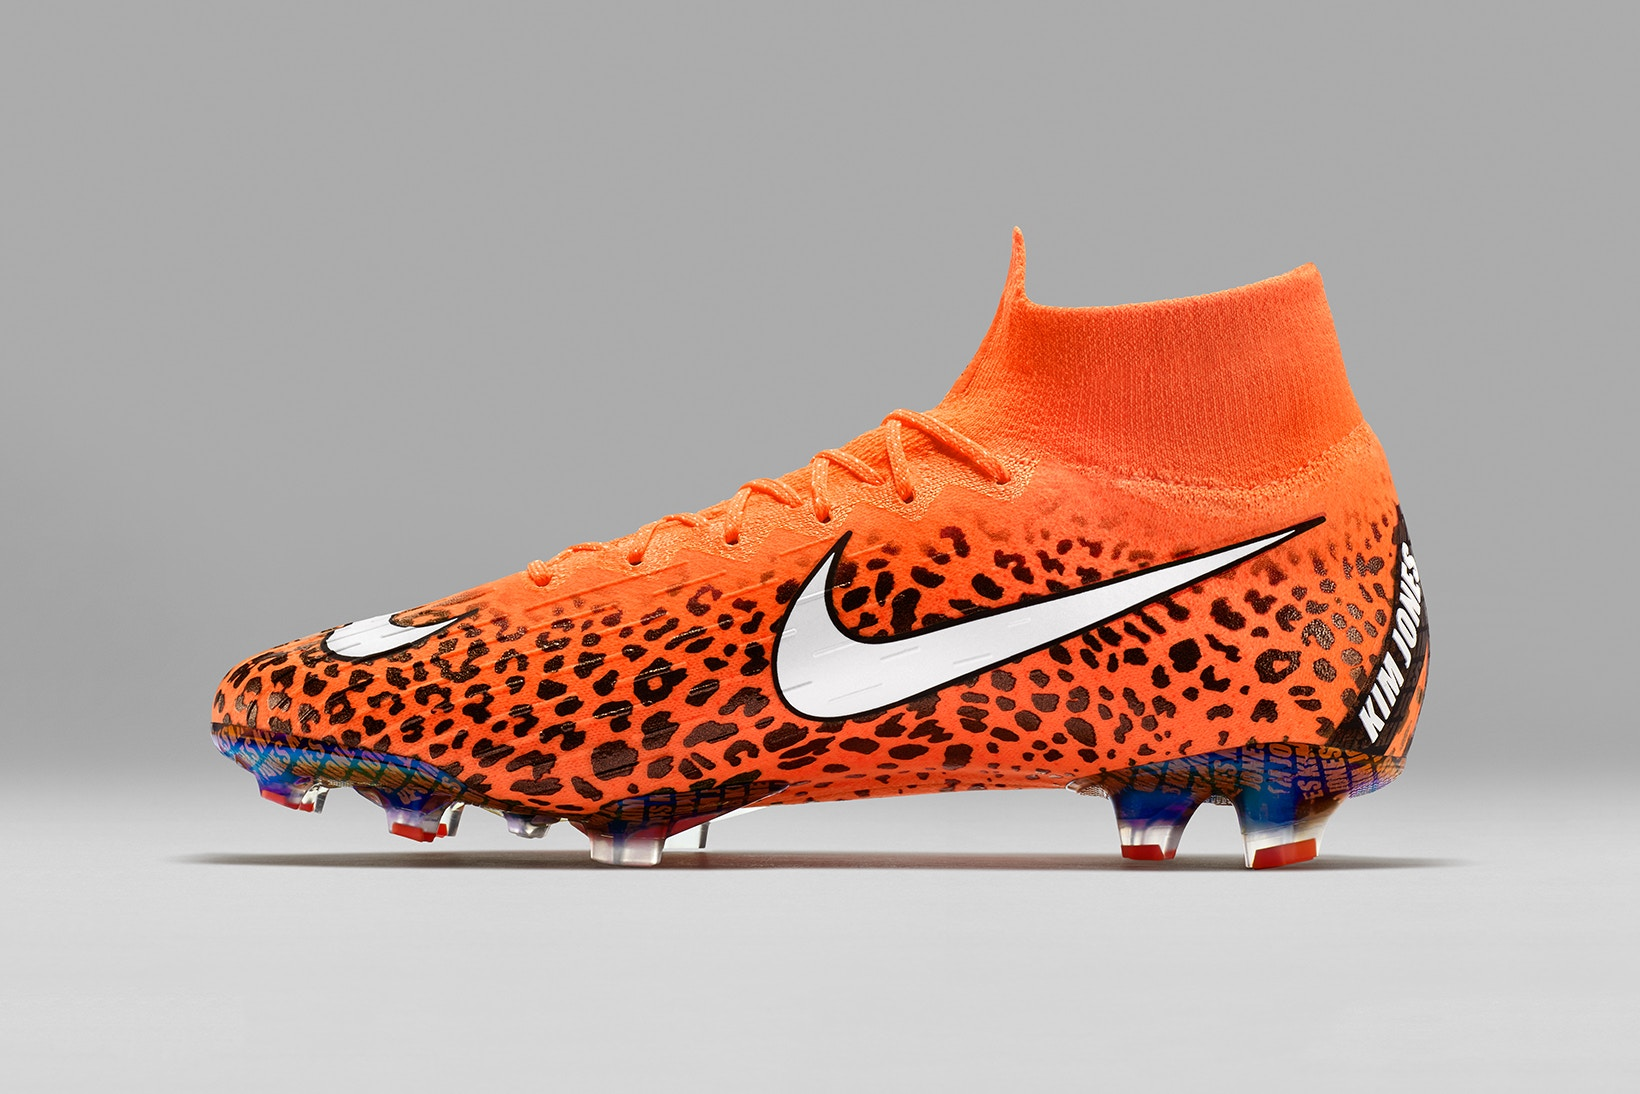 kim-jones-nike-football-boot-mercurial-superfly-002